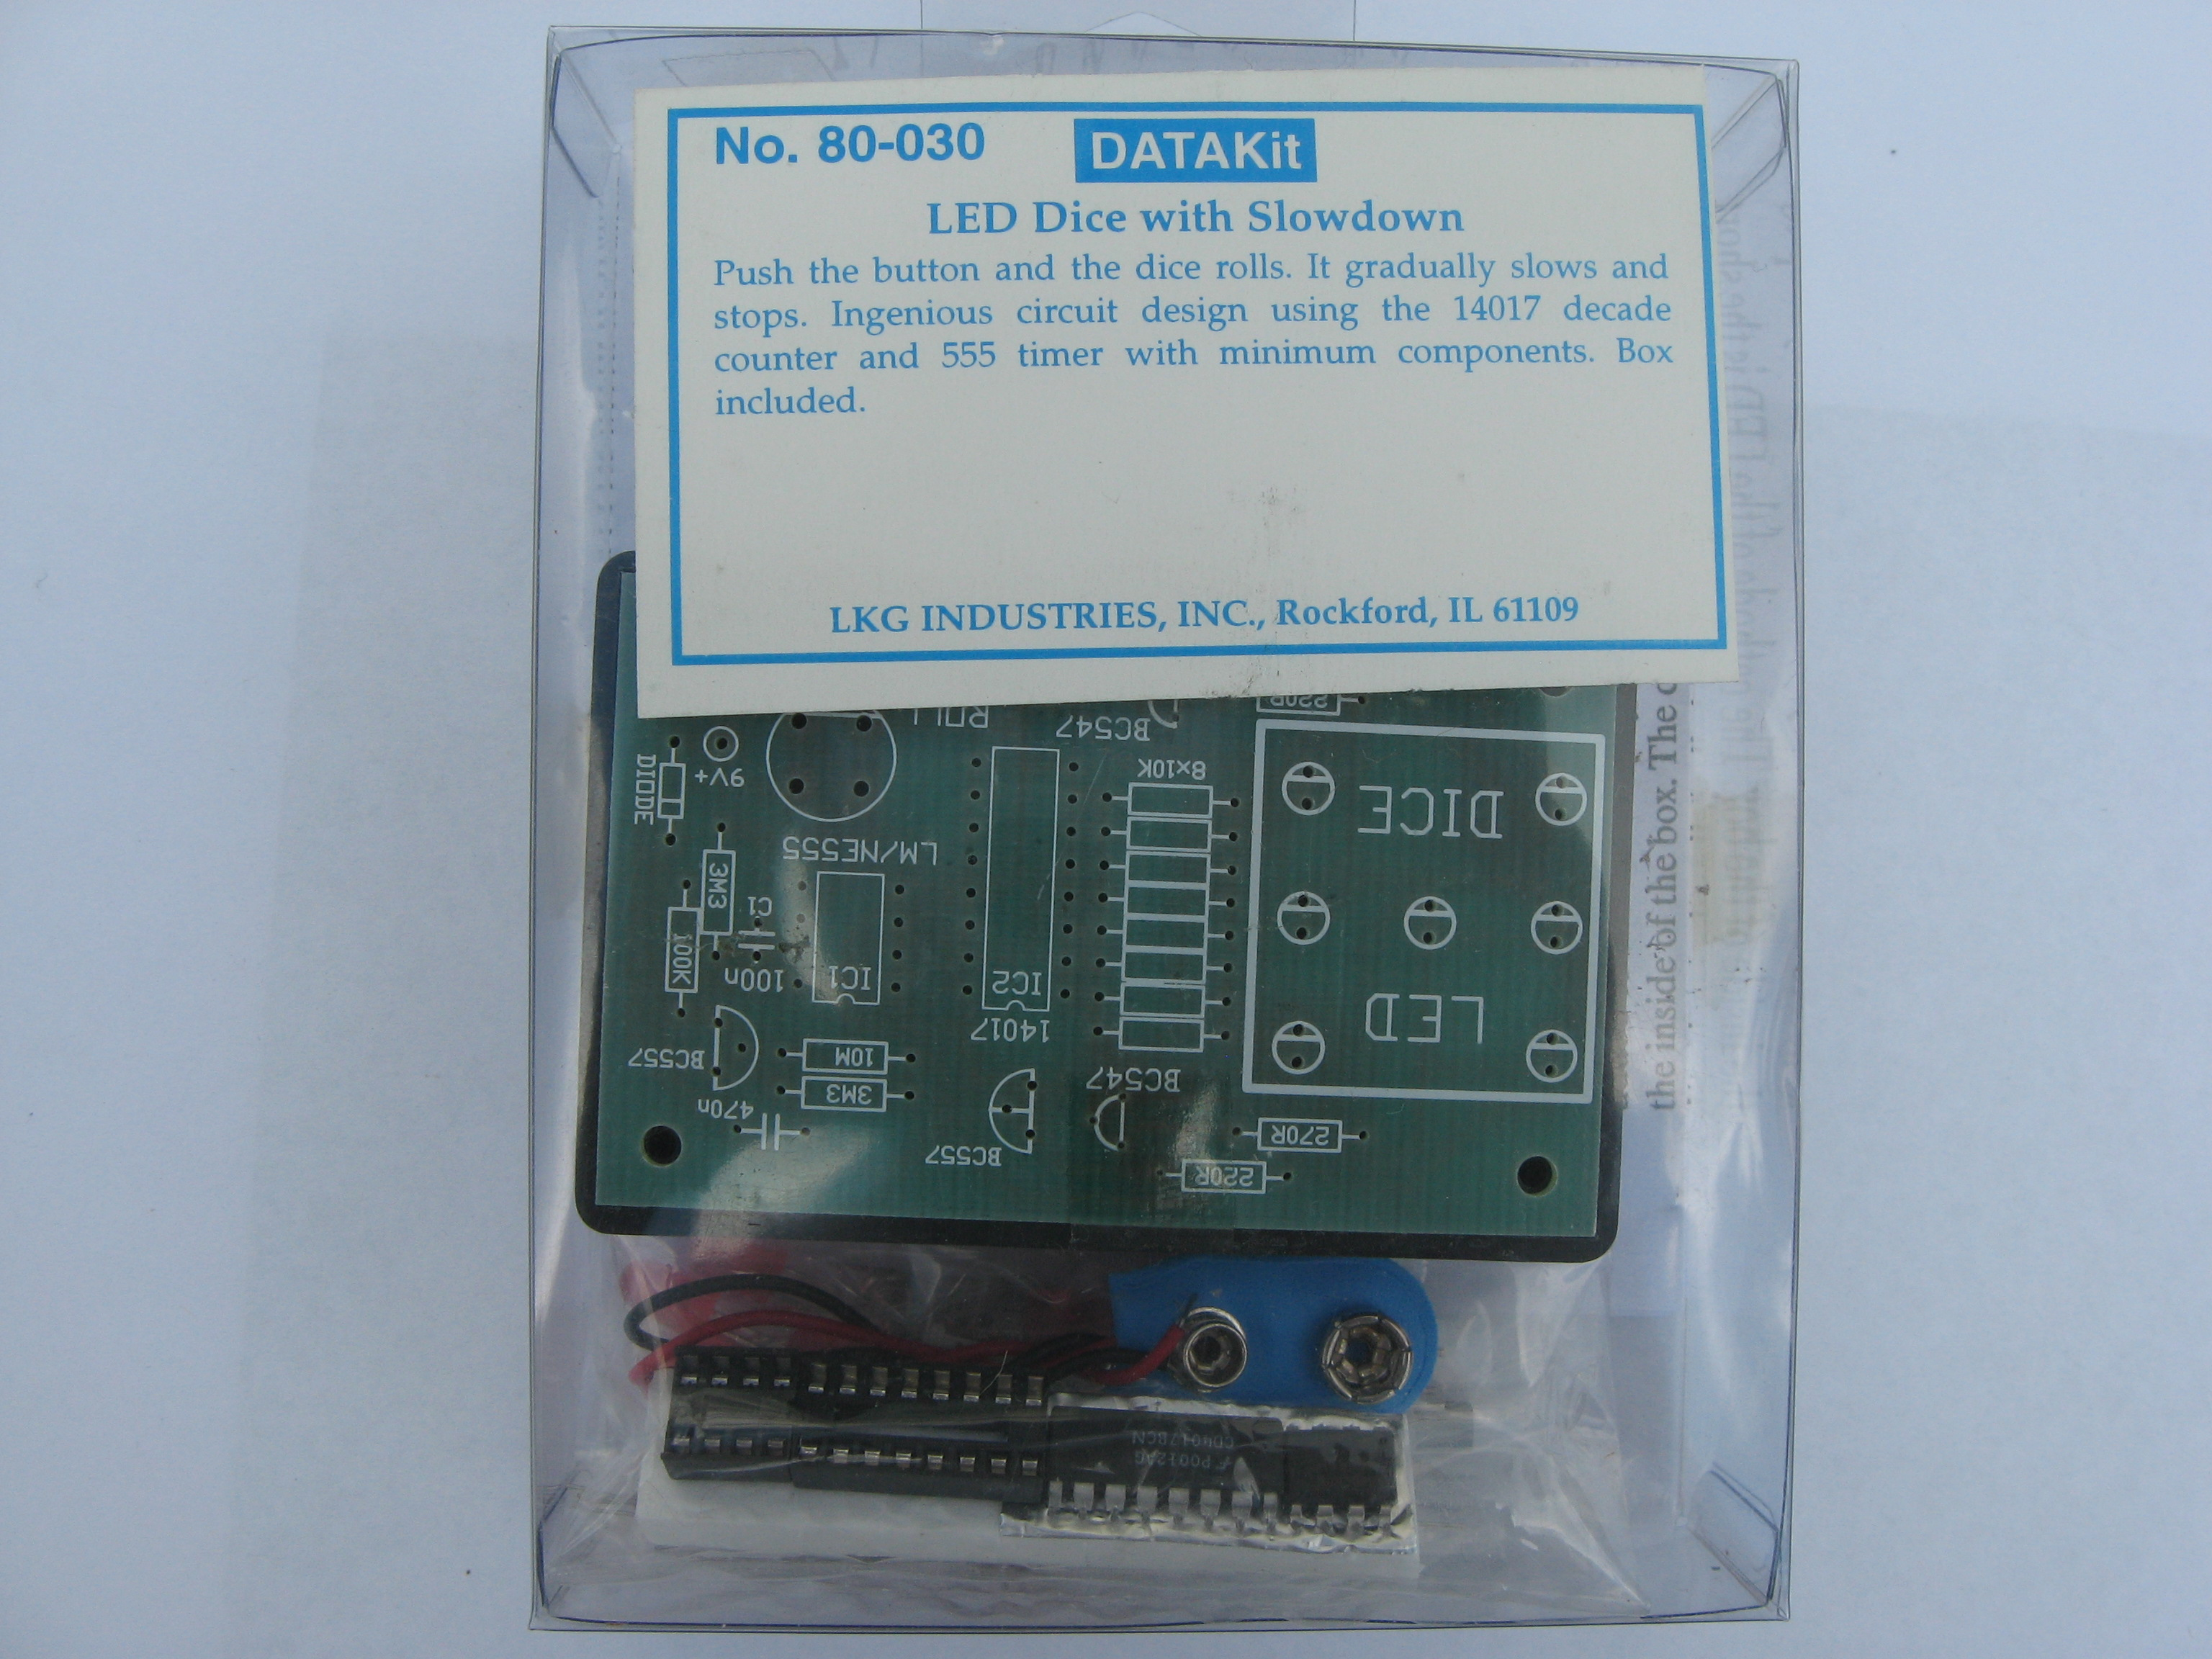 Datak 80 030 Led Dice Slowdown Electronic Kit Circuit Diagram Using Timer And Counter Ics With